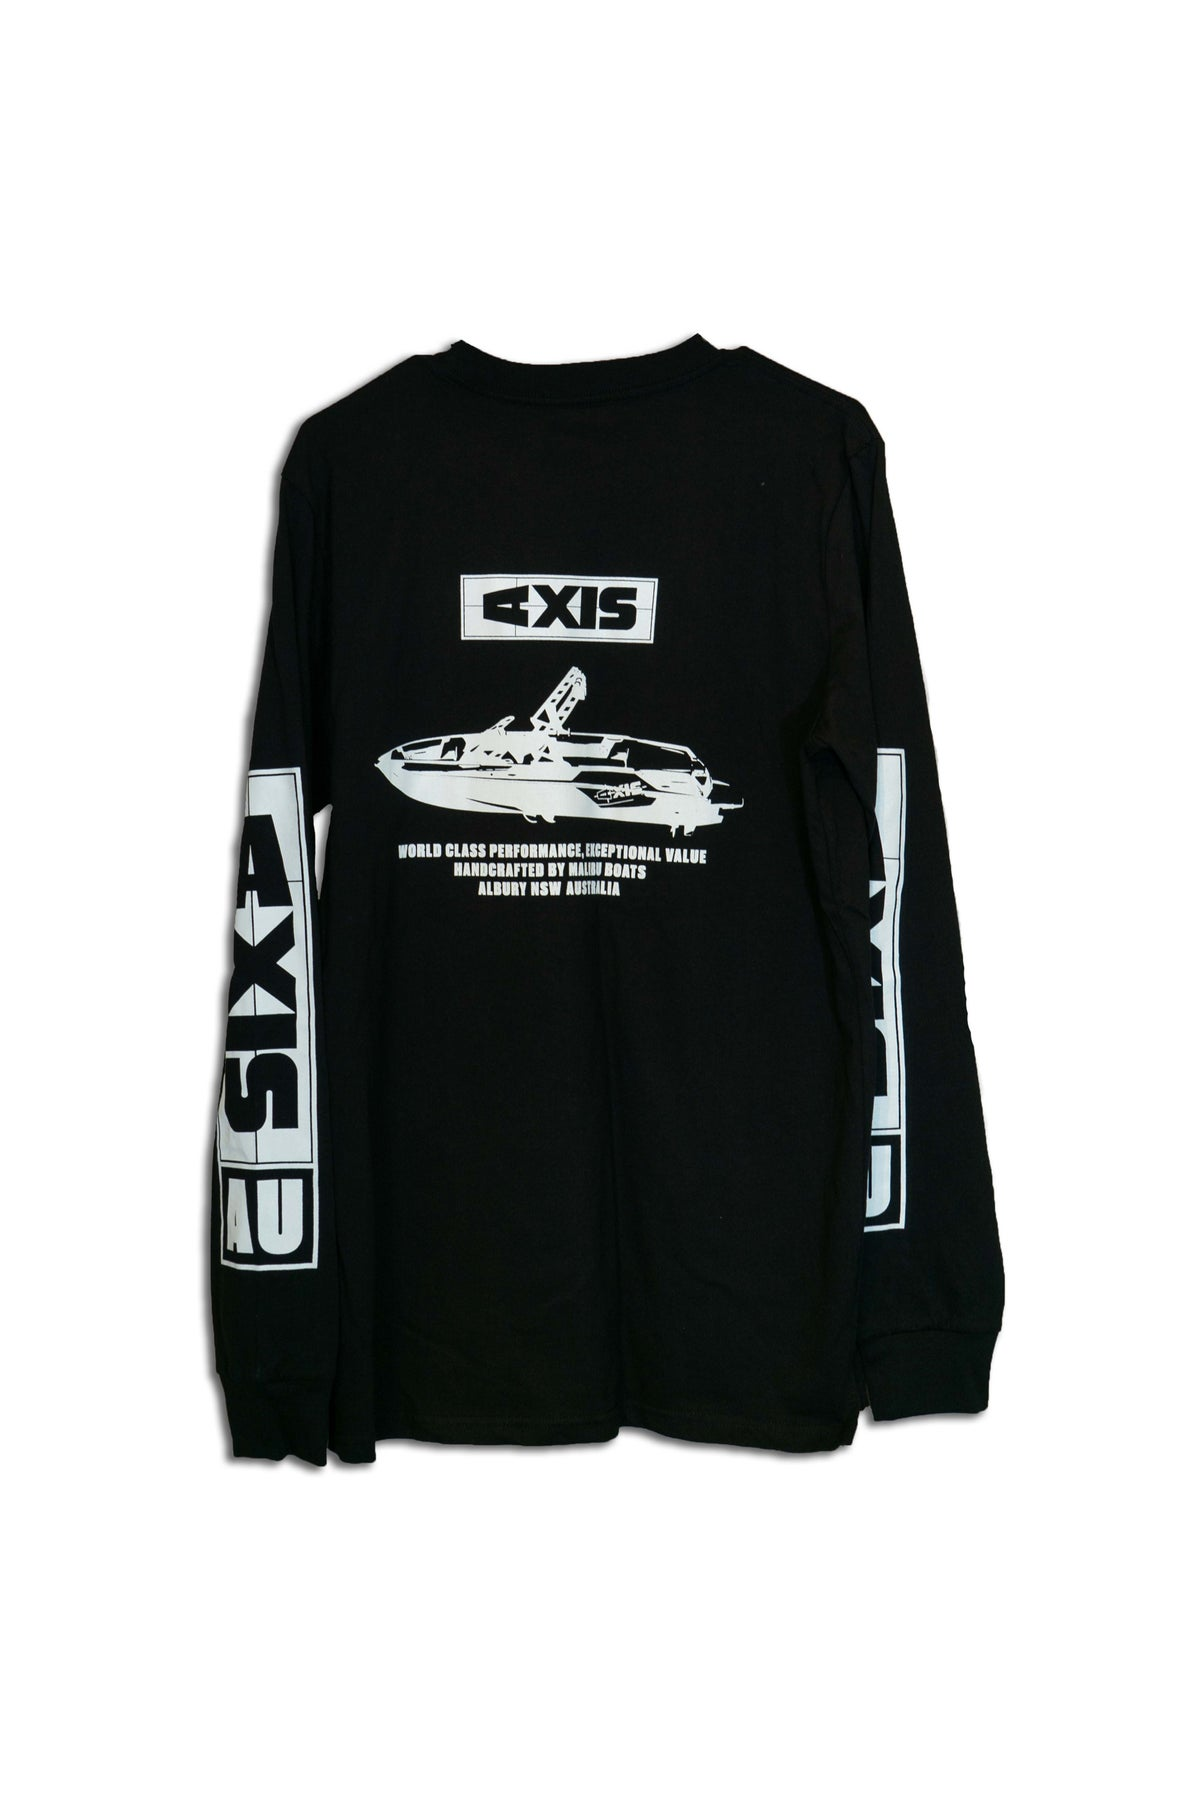 Image of AXIS Unisex Long - Sleeve Shirt - Black